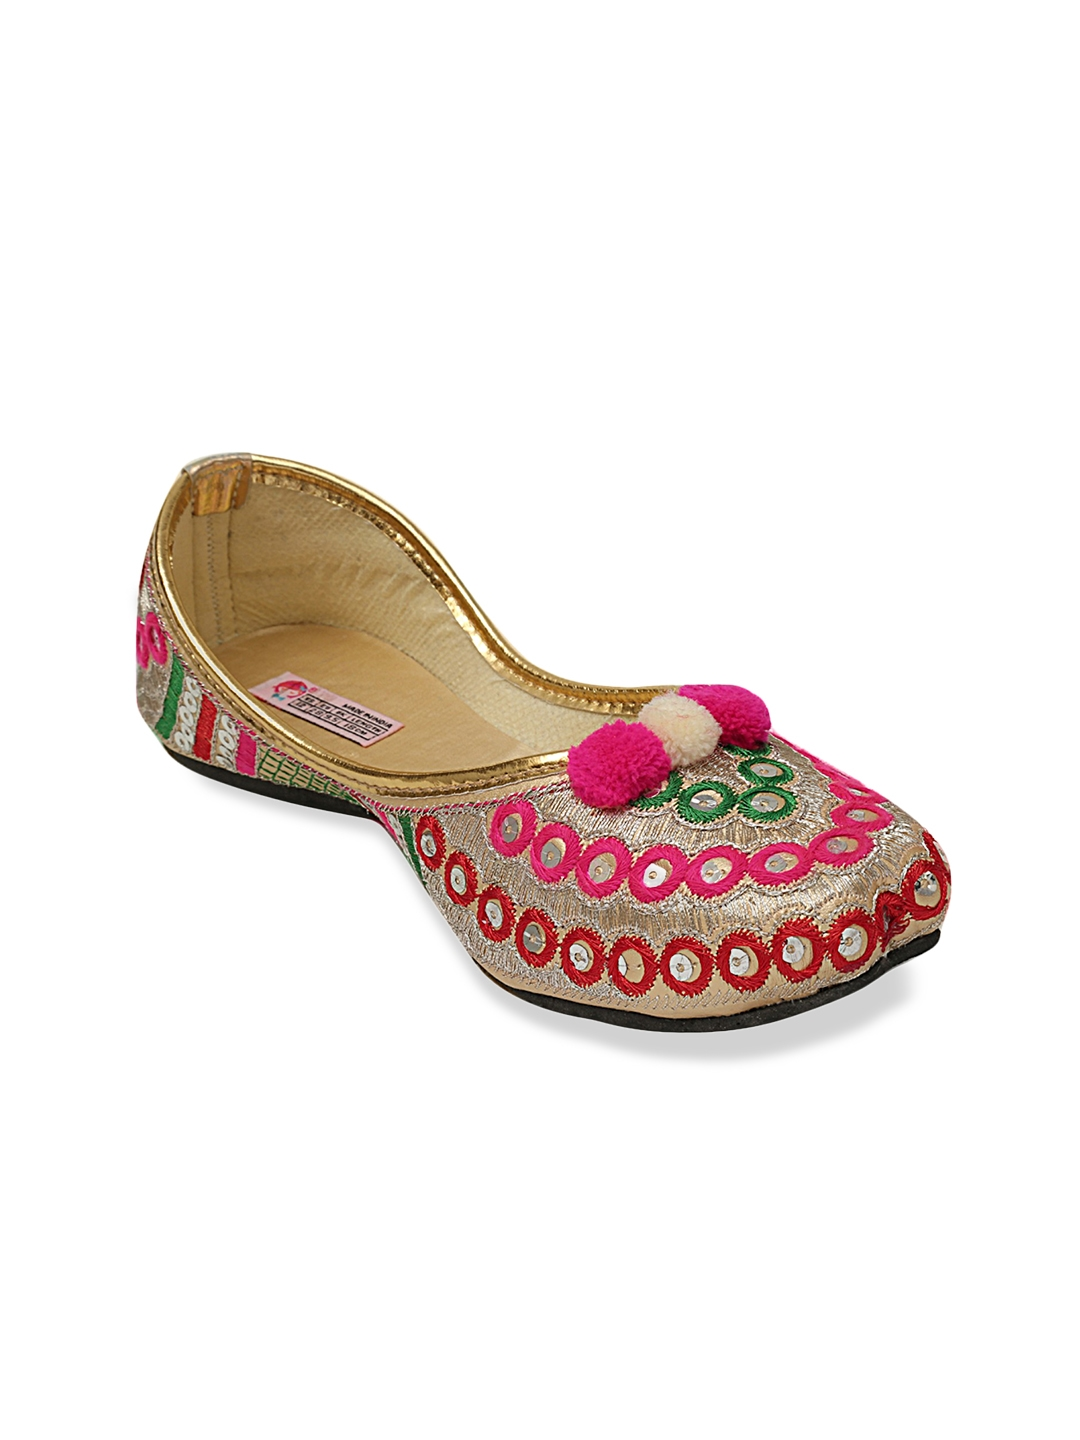 f587691328b6 Buy DChica Girls Gold Toned Woven Design Embellished Mojaris - Flats ...